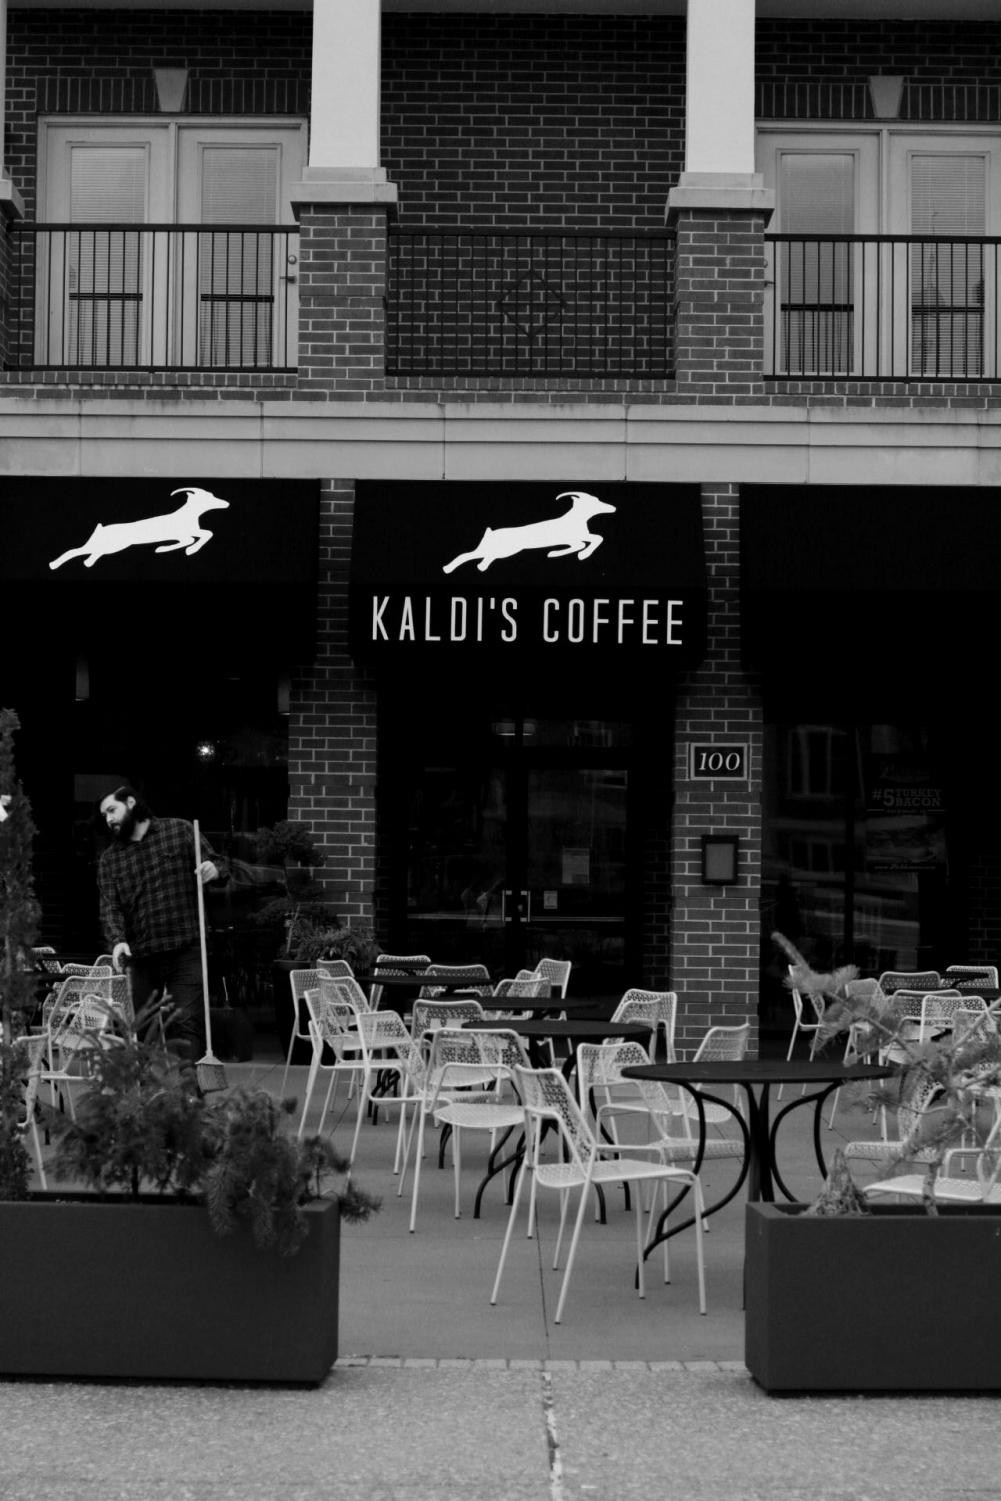 Kaldi%27s+Coffee+has+great+coffee+and+an+even+better+location+on+the+plaza.+